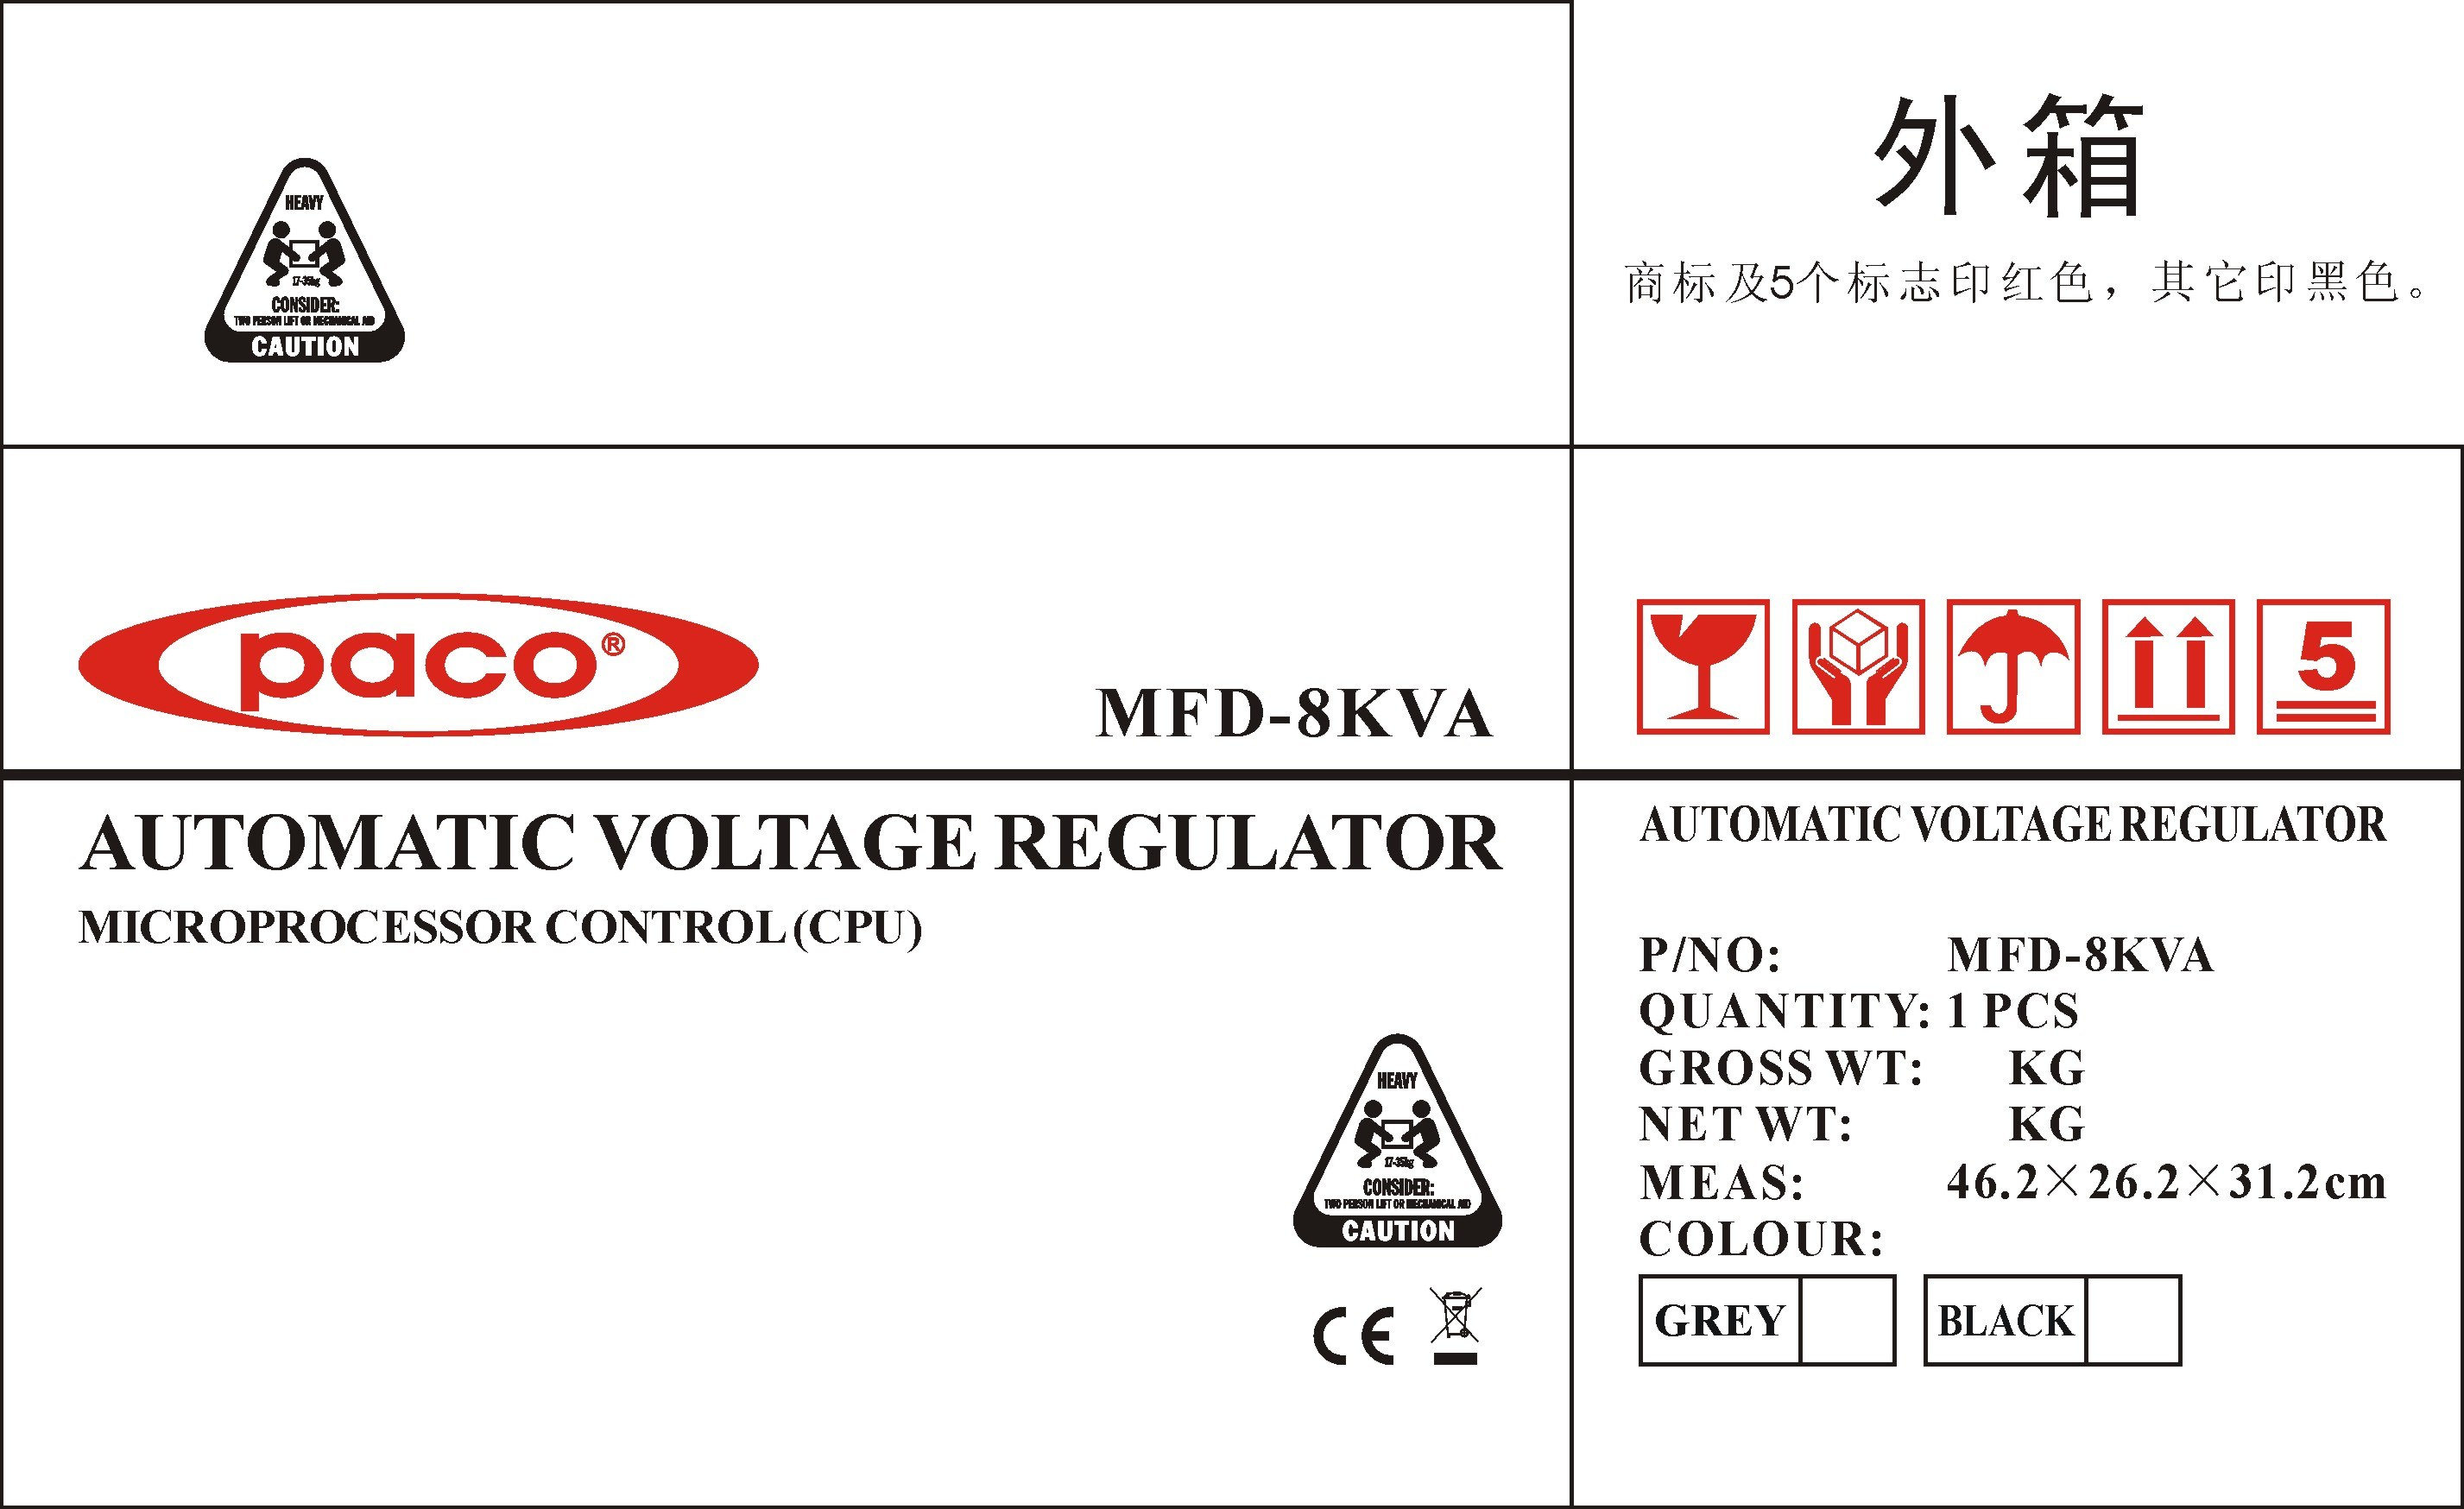 China Single Phase Circuit Diagram Mfd 8kva Automatic Voltage Regulator